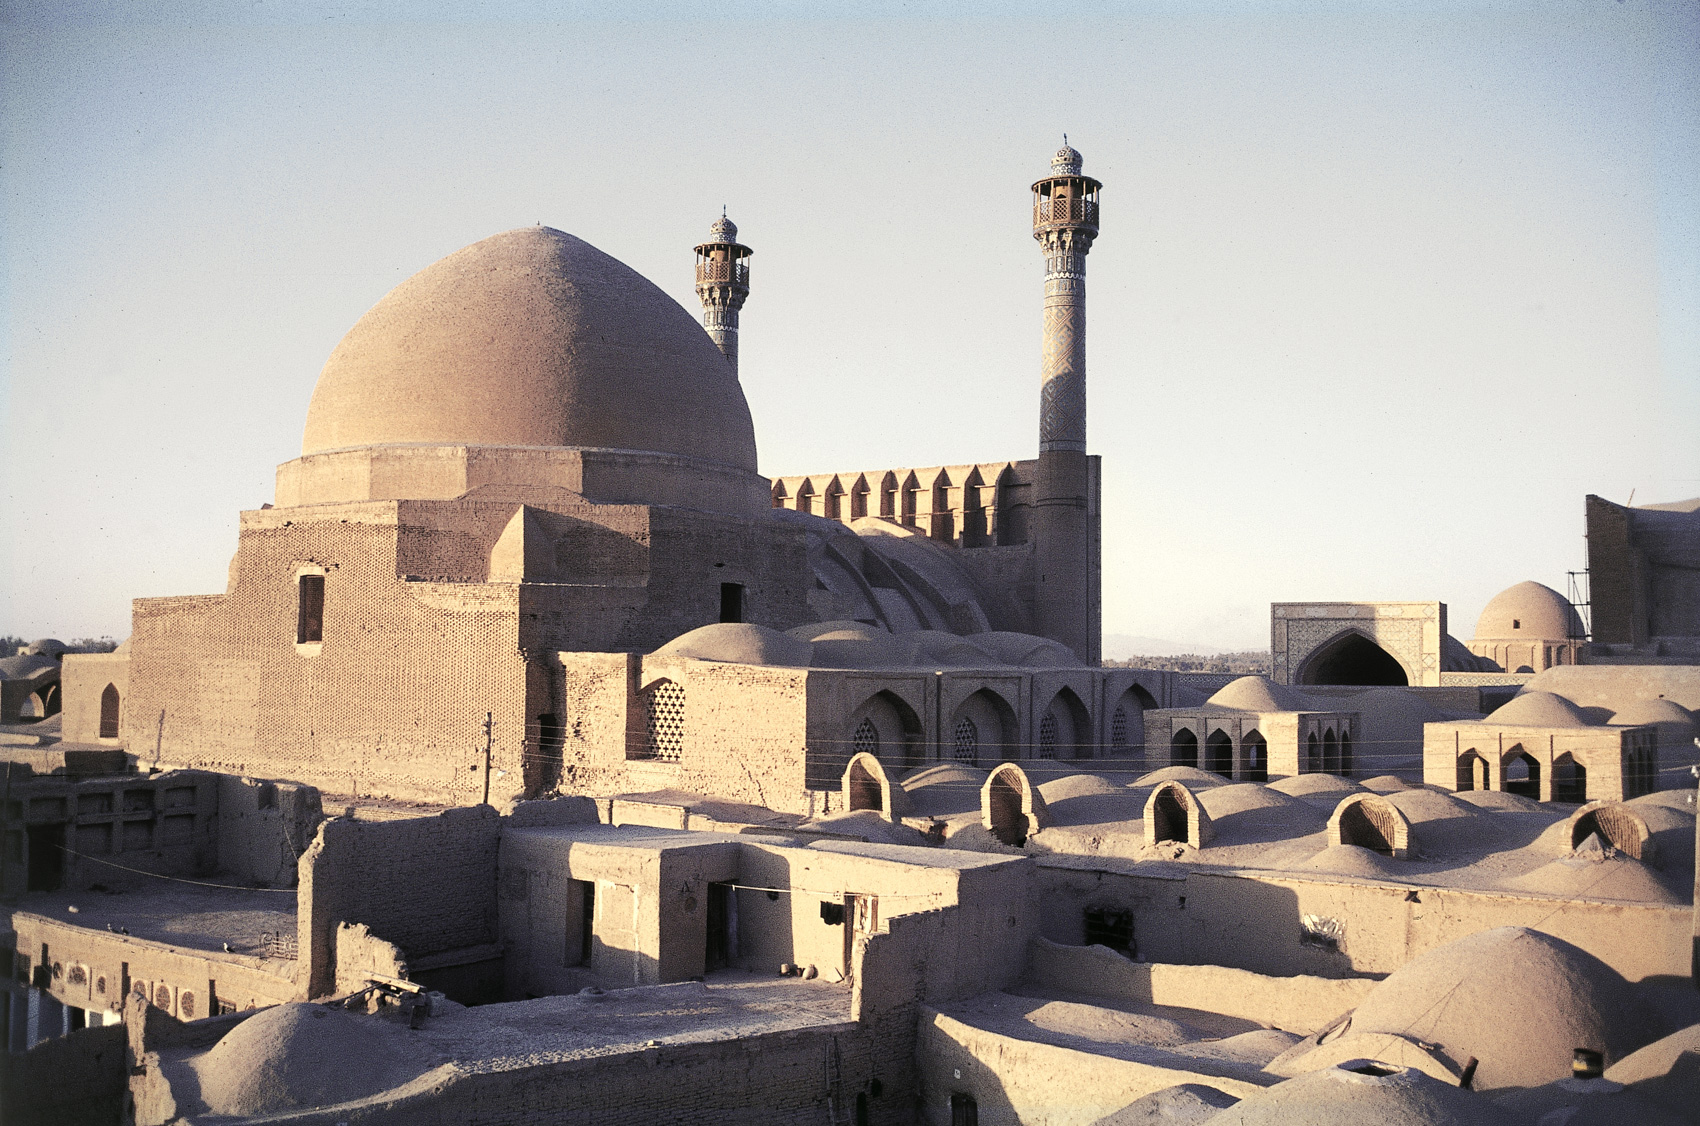 Ancient-Building-in-Iranjpg